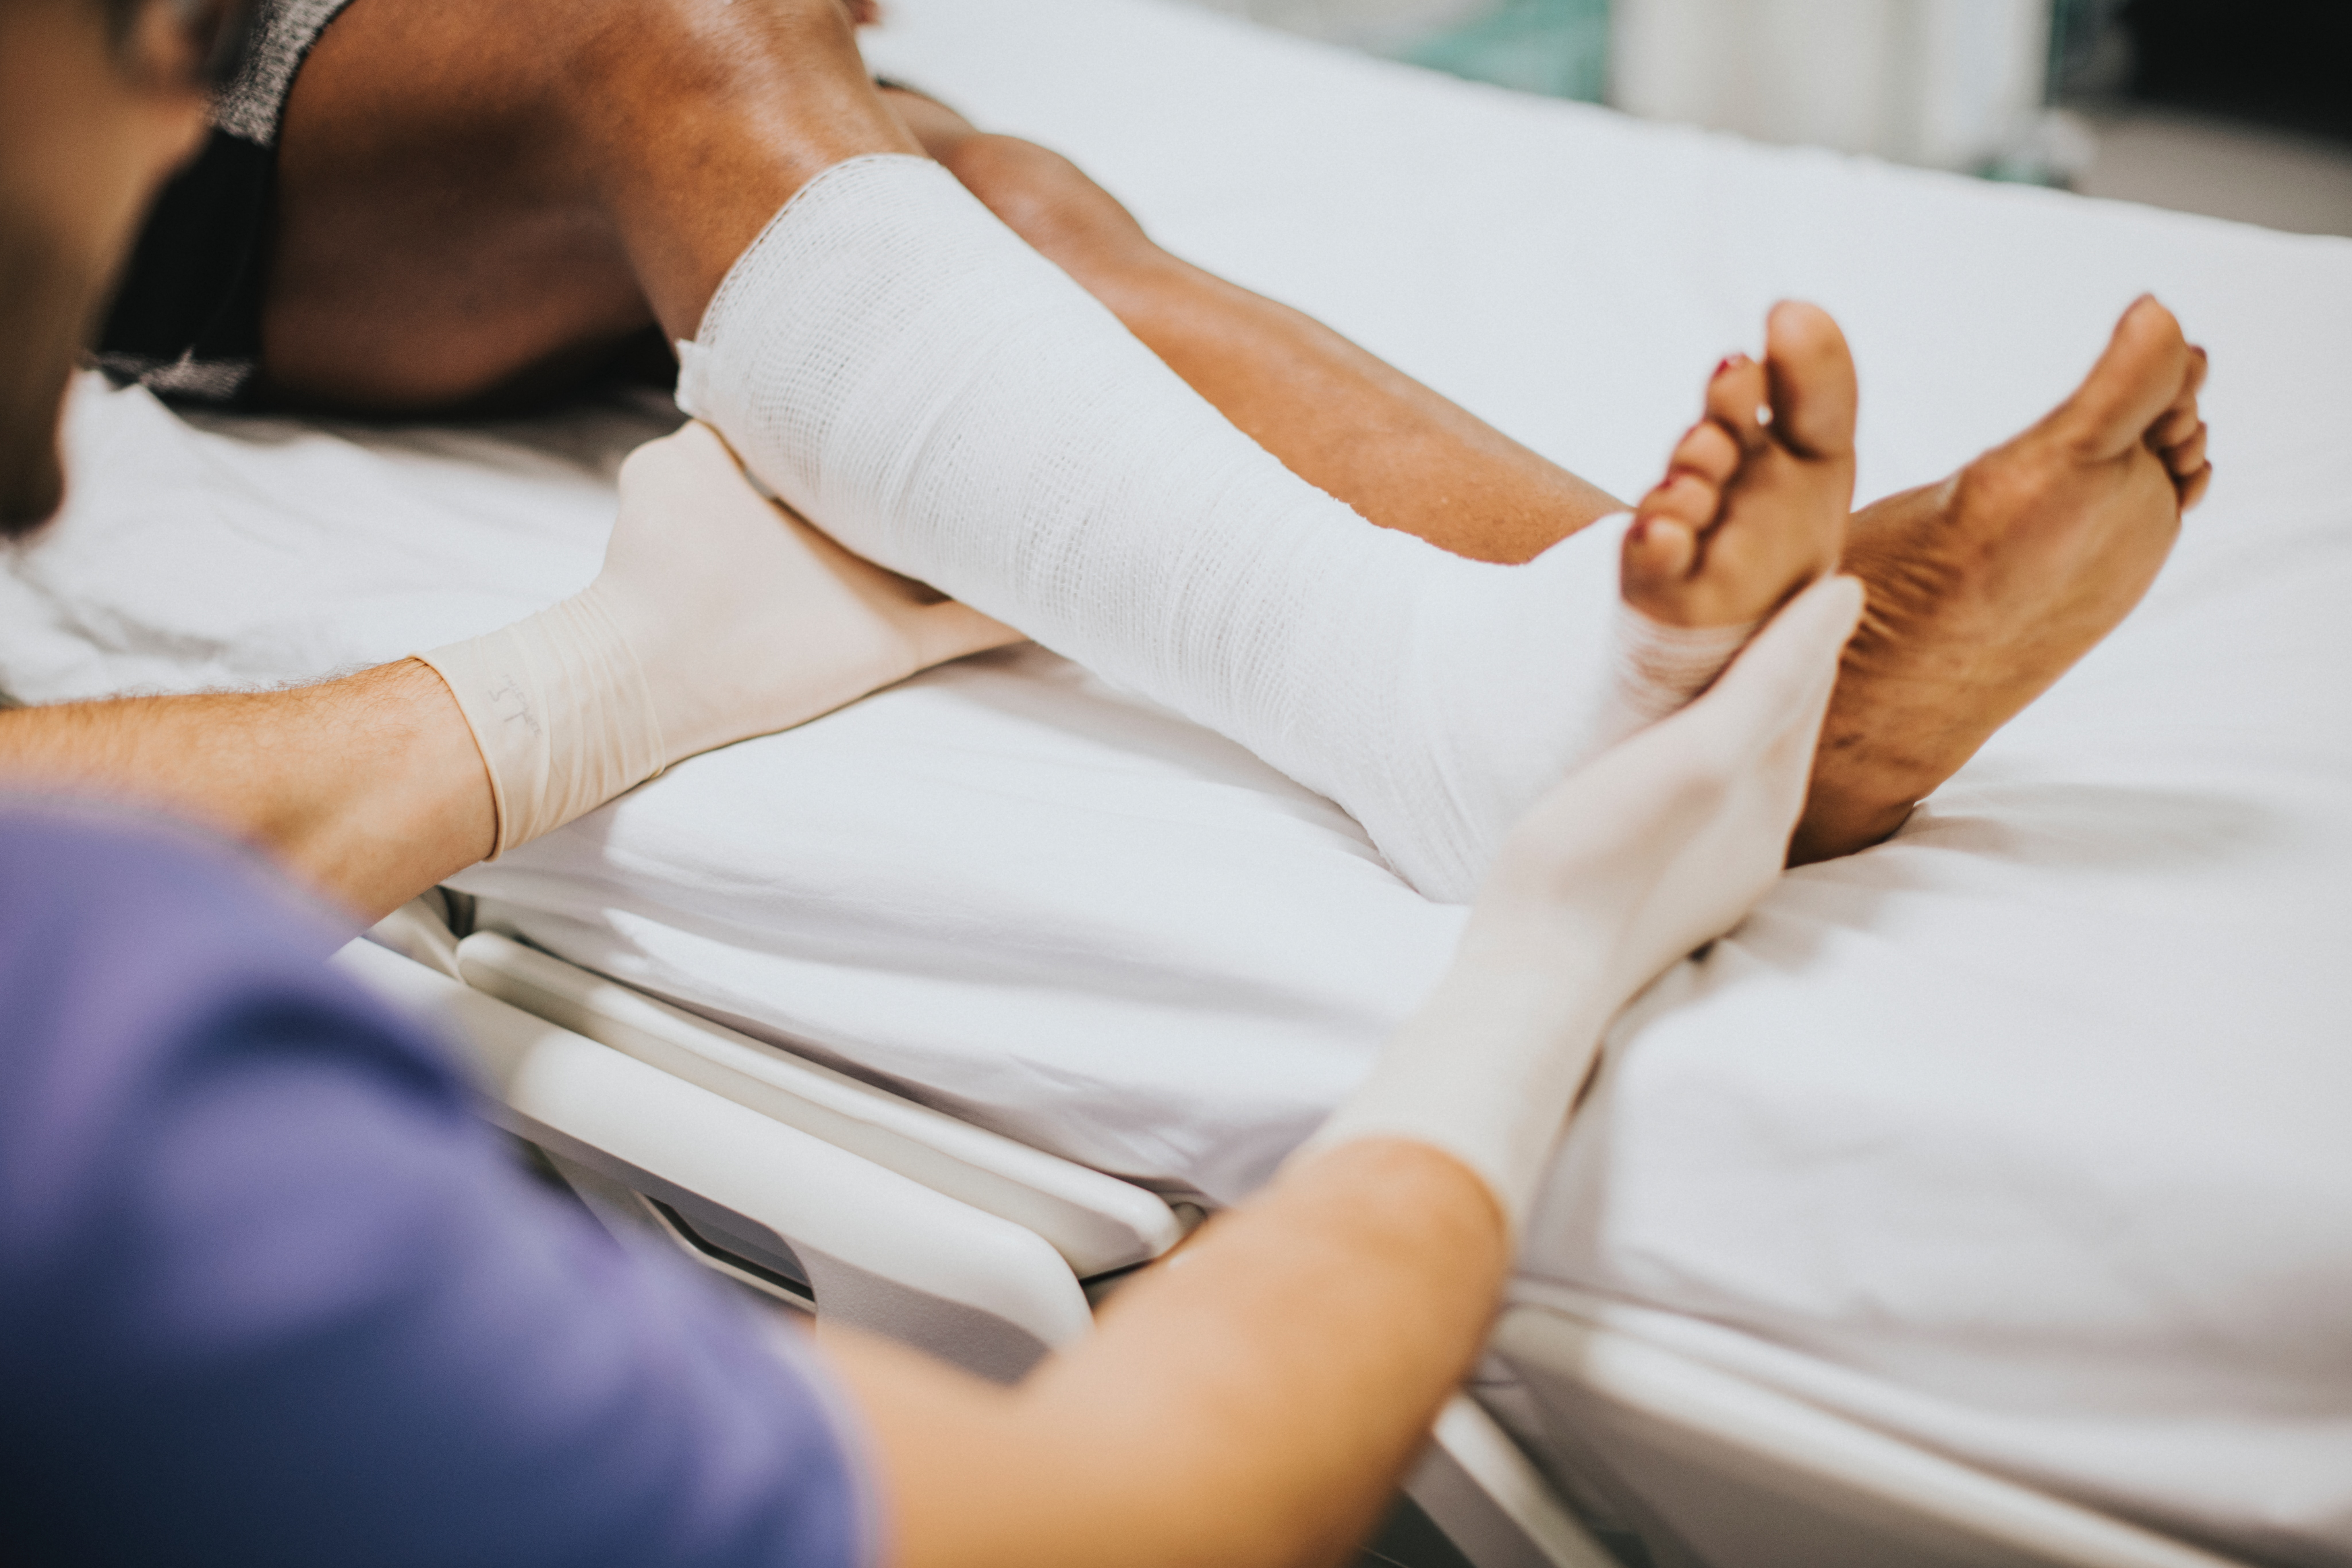 A Doctor Of Podiatric Medicine DPM Is Defined As Physician And Surgeon That Practices The Art Podiatry Practice By Utah